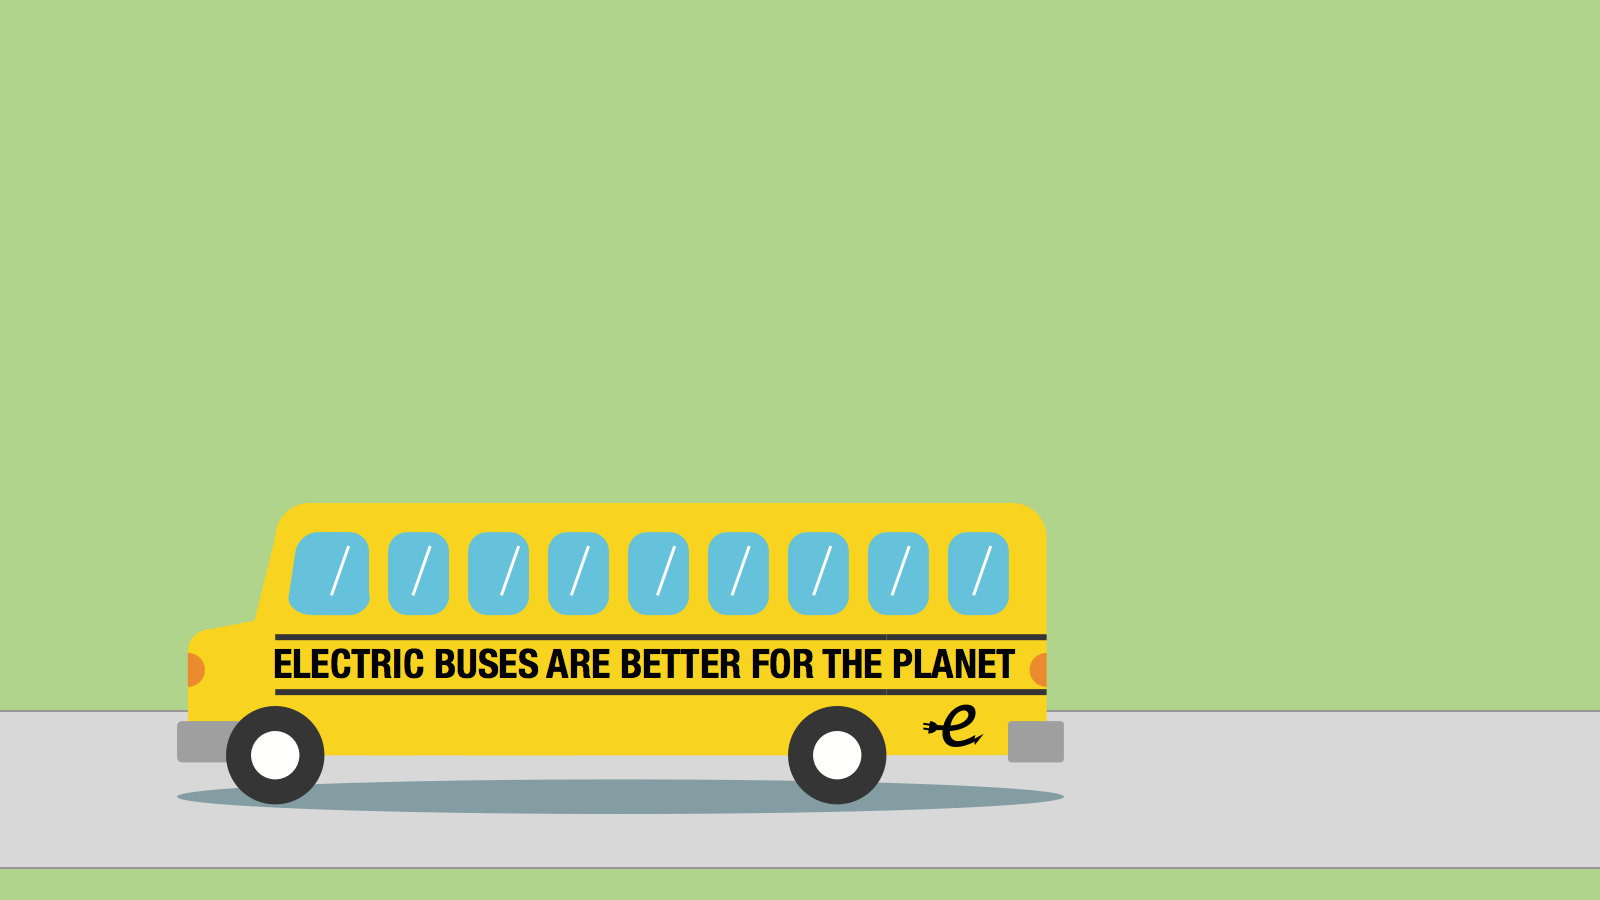 <h3>BENEFITS OF ELECTRIC BUSES</h3><p>Replacing all of America's school buses with electric buses could avoid an average of 5.3 million tons of greenhouse gas emissions each year.</p>